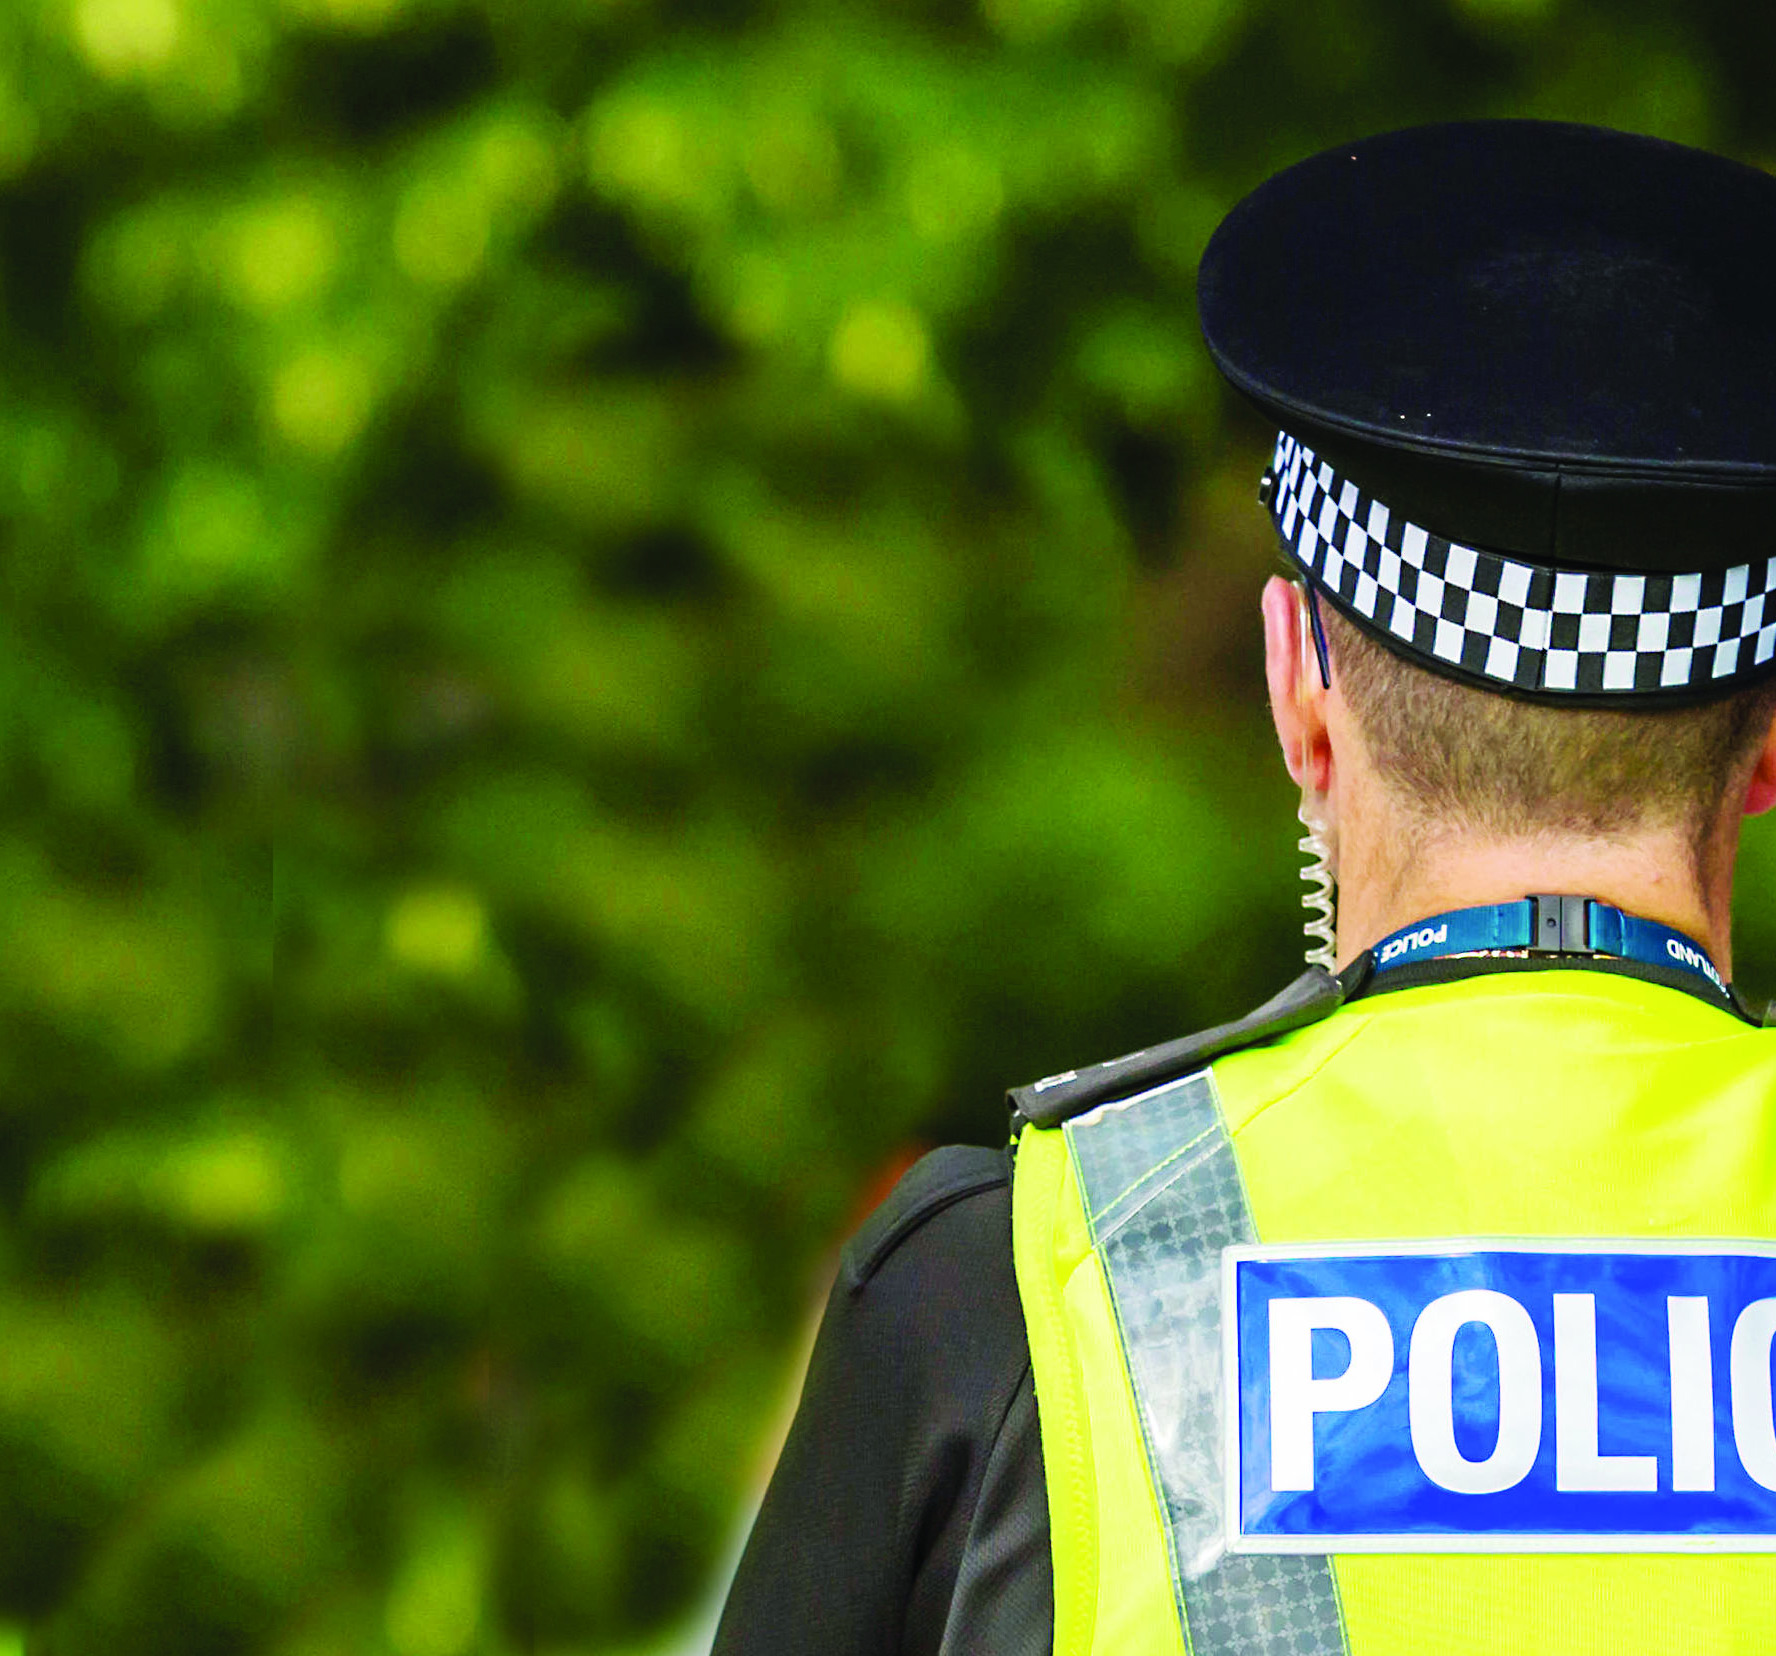 Theft from park car in Whitchurch